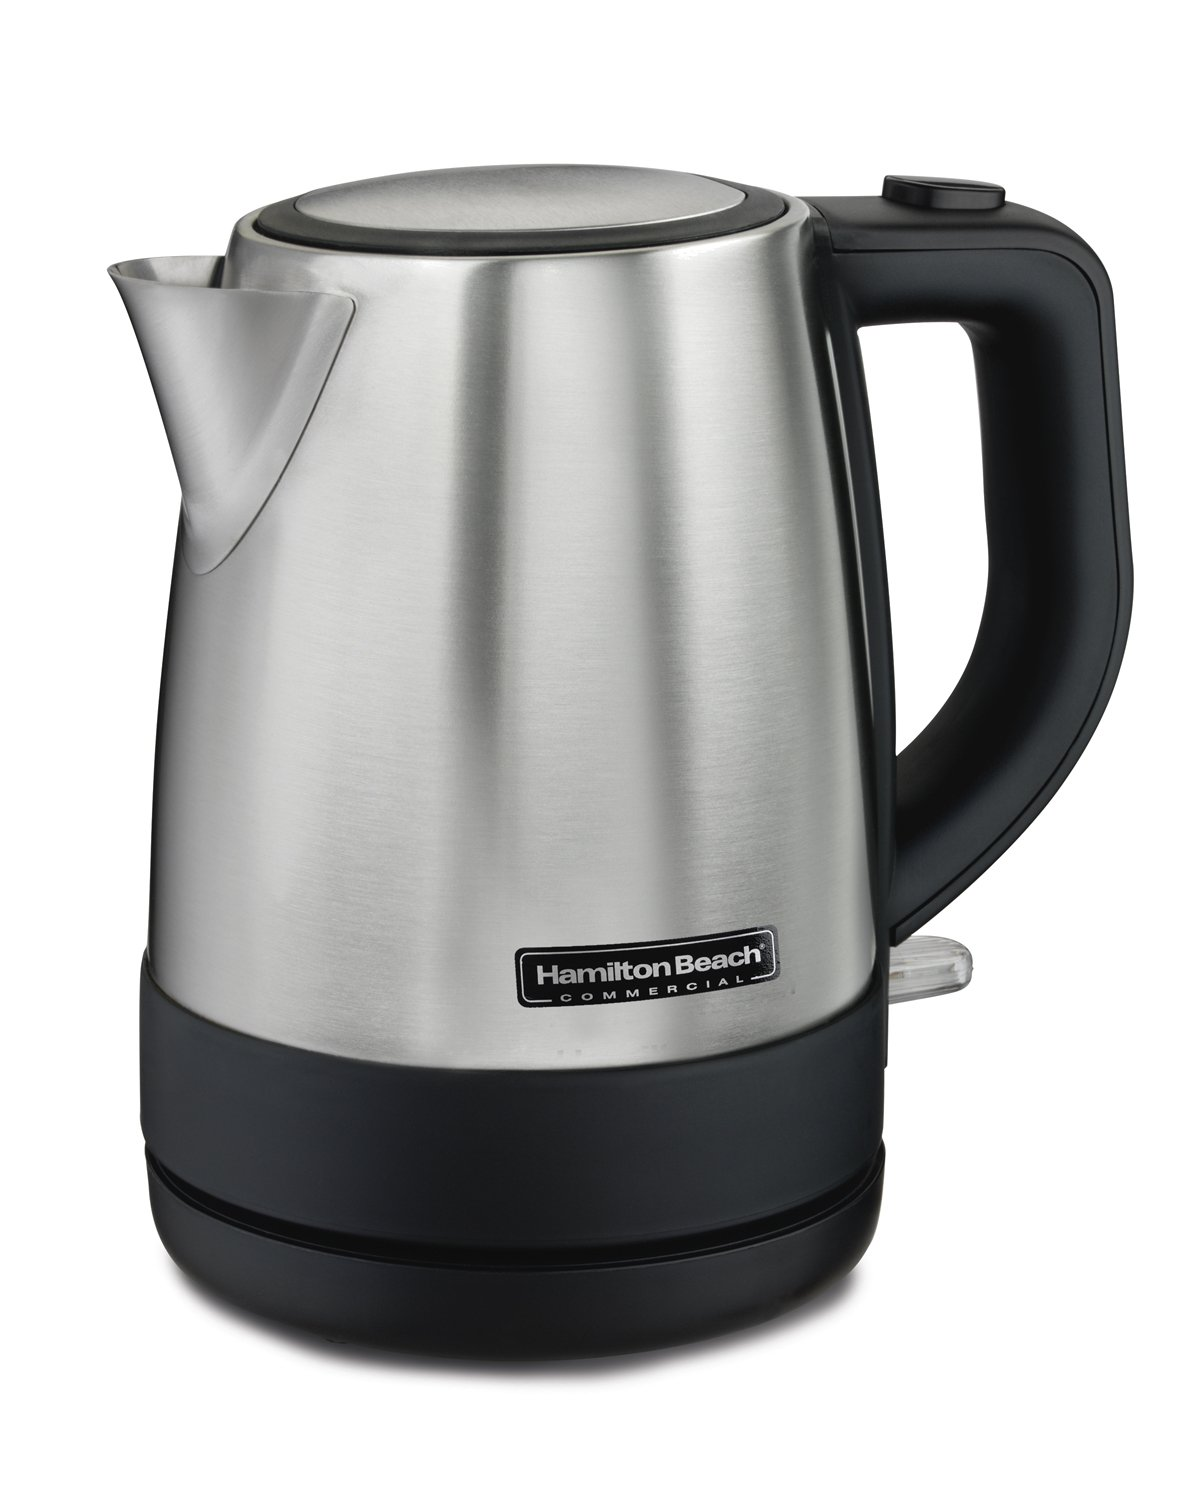 Hamilton Beach Commercial HKE110 1 Liter Hot Water Tea Kettle, Hospitality Rated, Stainless Steel